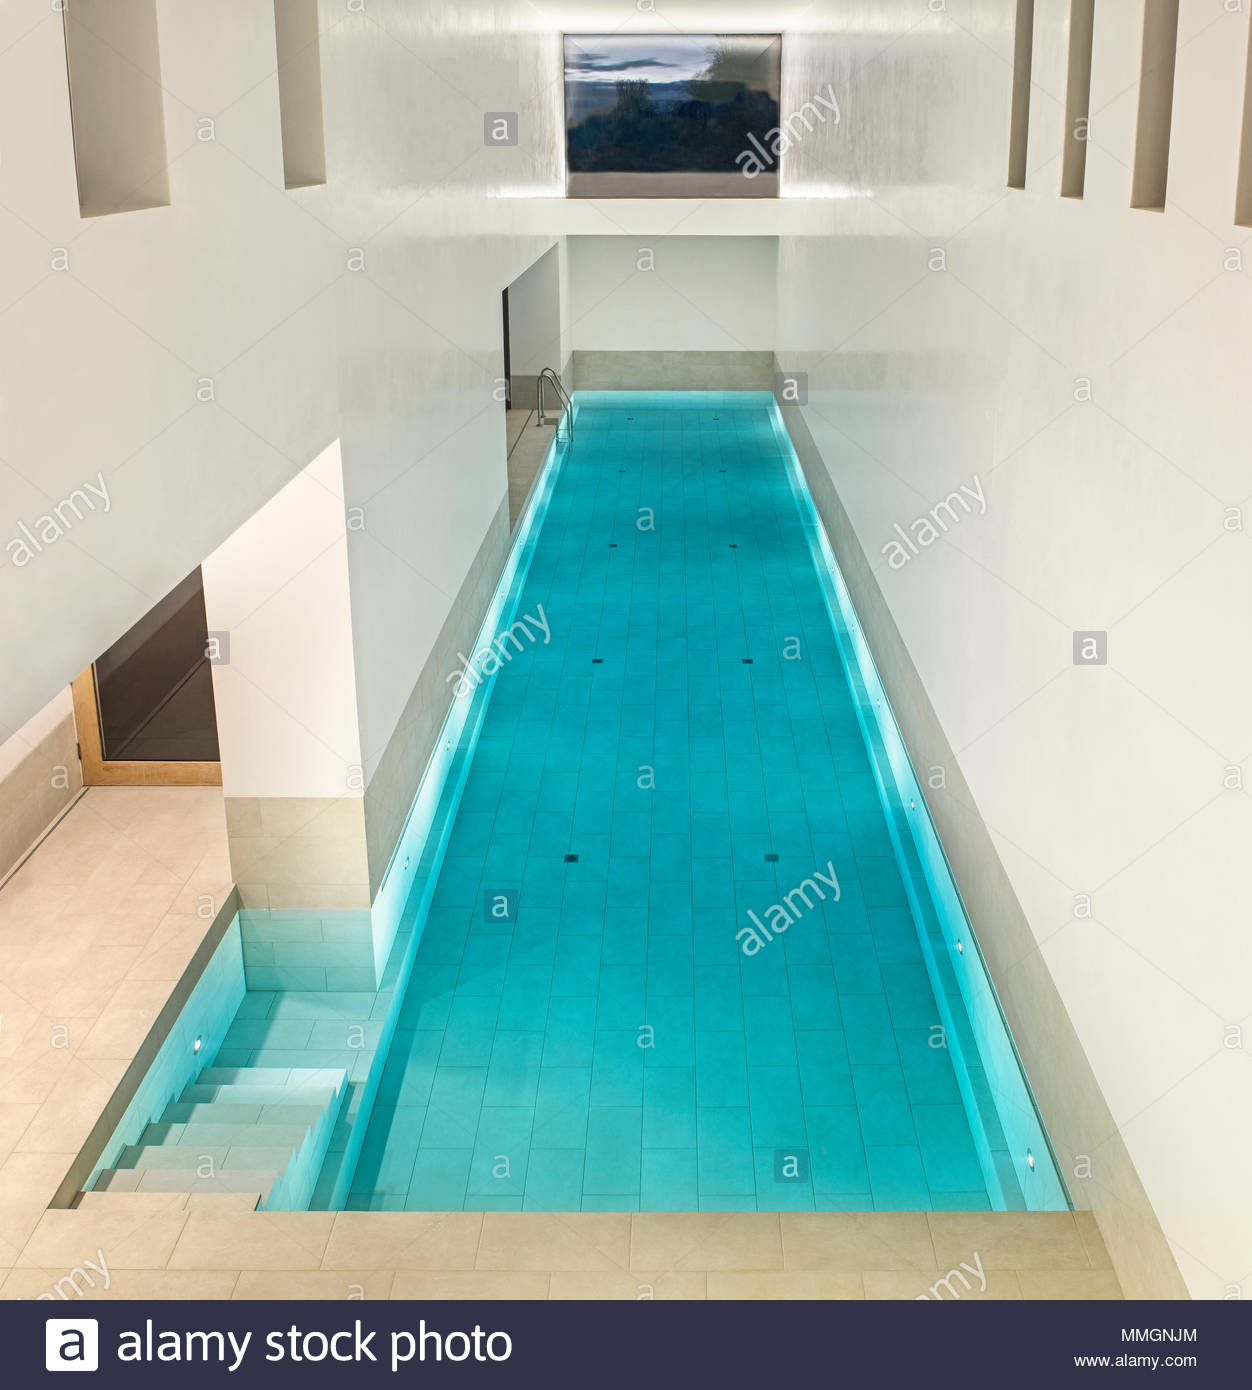 Luxury Indoor Swimming Pool Private Pool Perfect For Relaxation Or Exercise Stock Photo Alamy